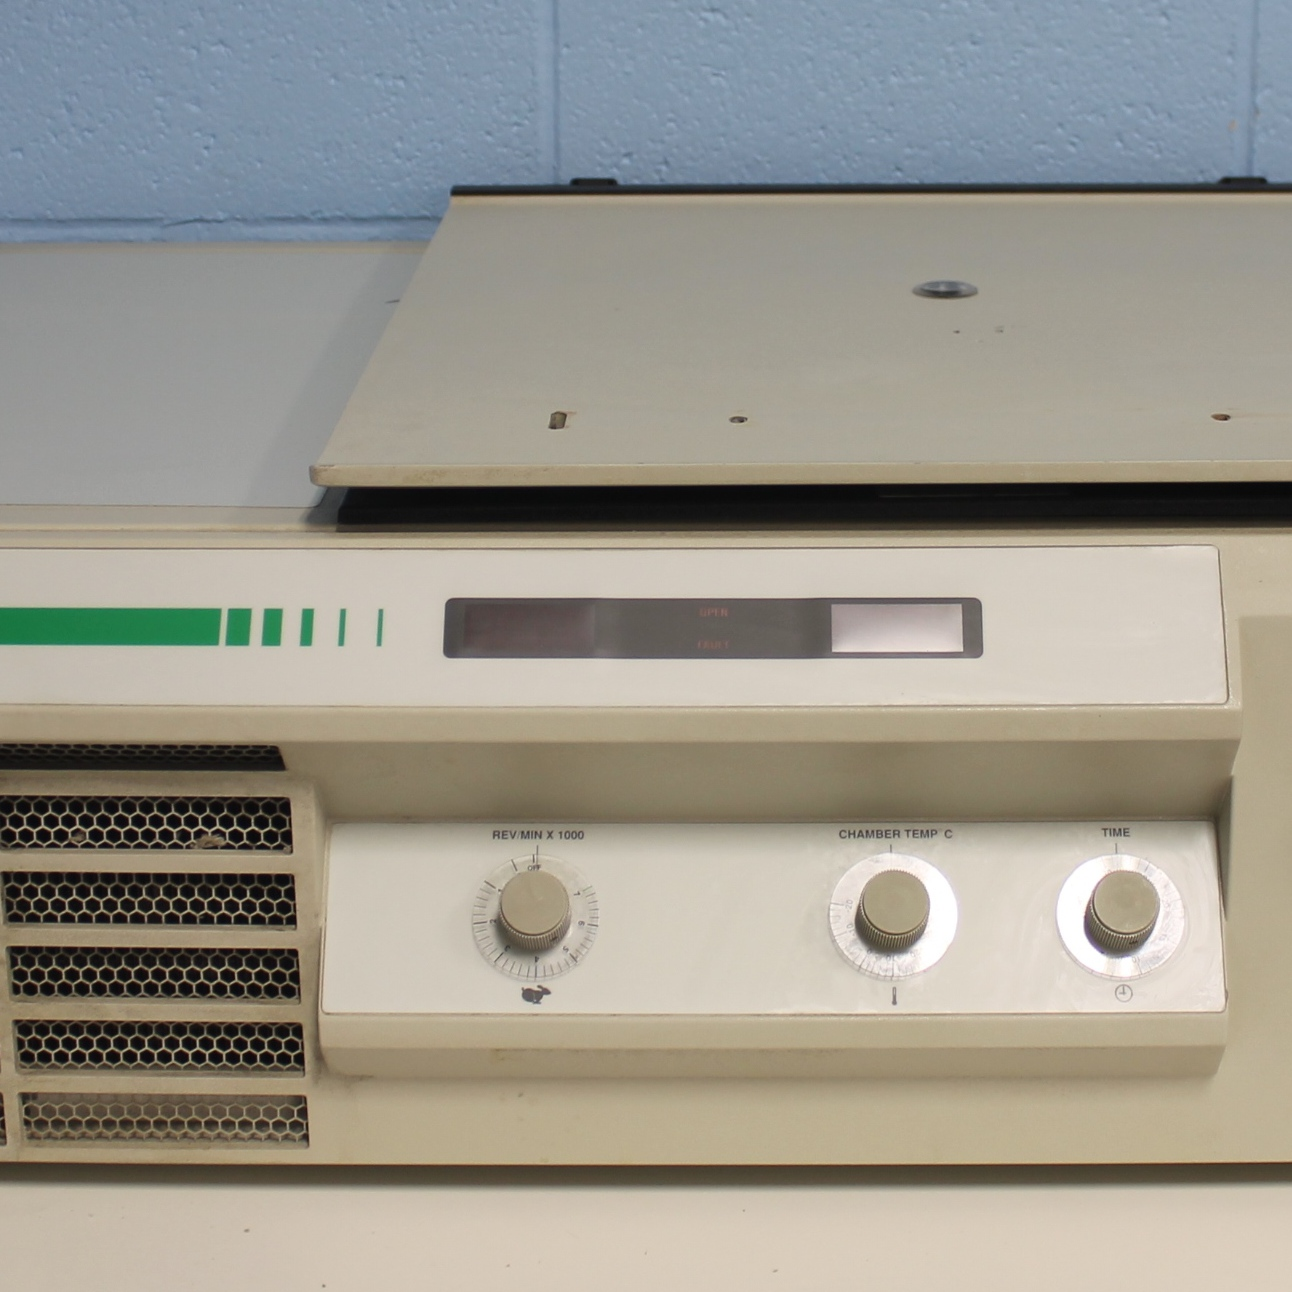 Sorvall RT-7 Refrigerated Benchtop Centrifuge Image